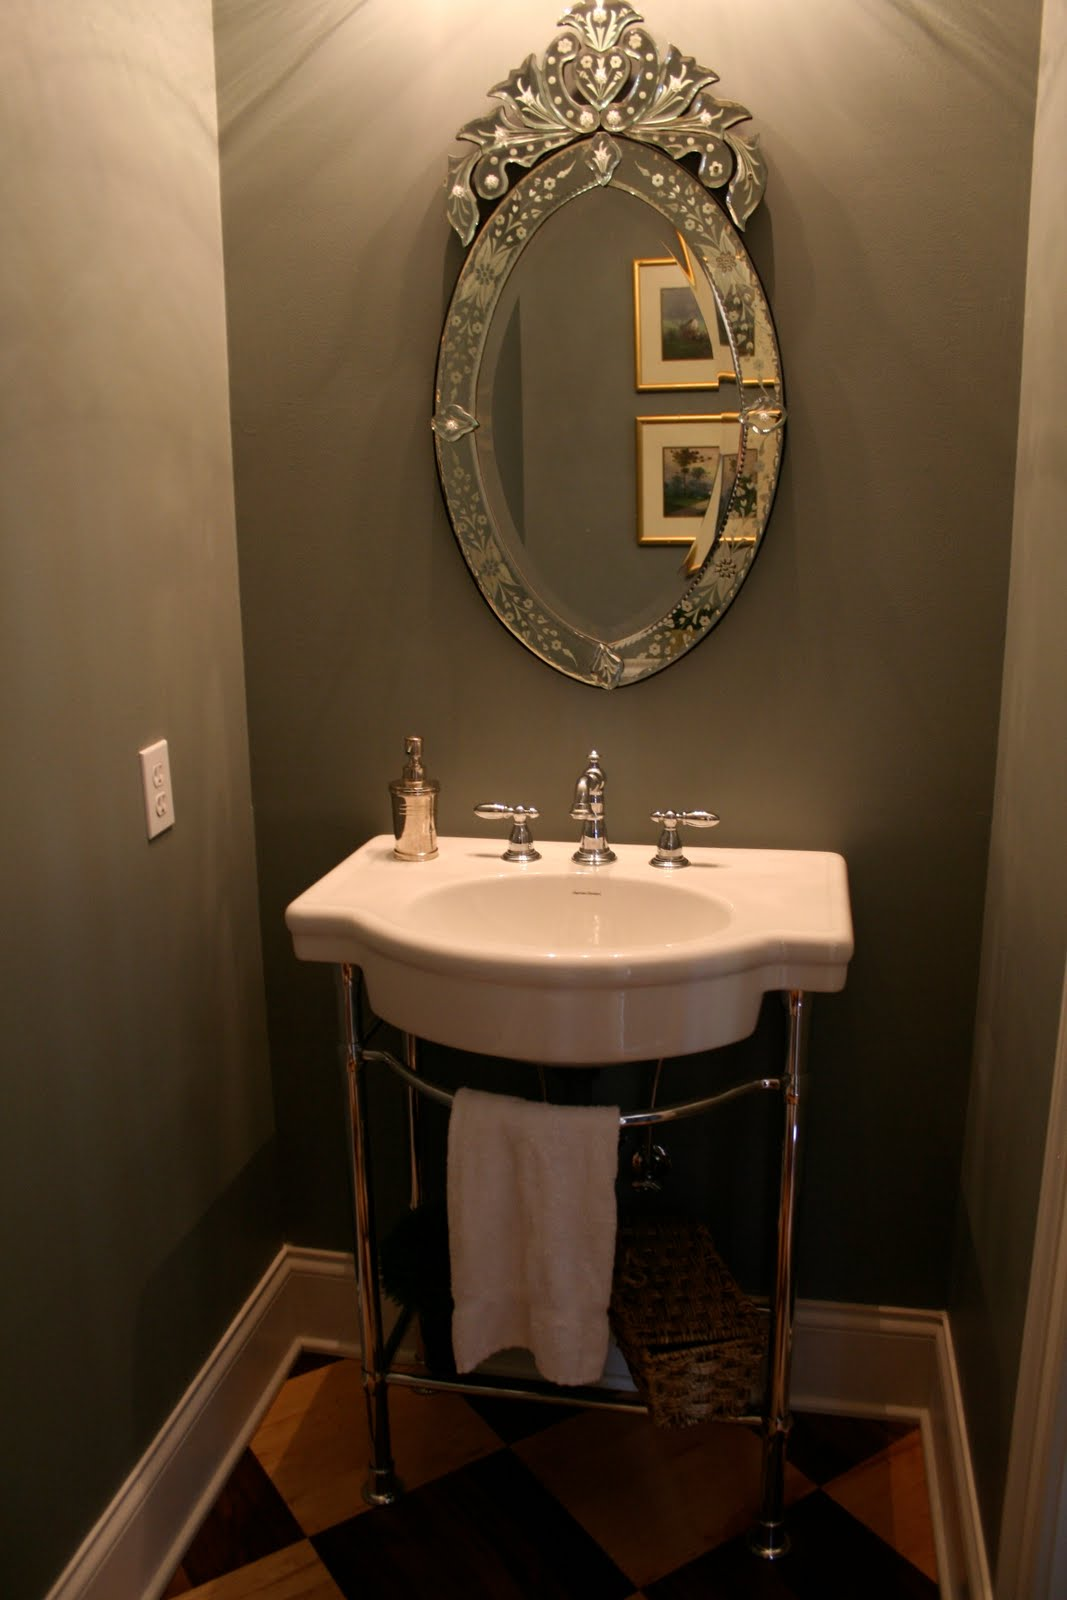 Design dump house 5 powder room before after for Bathroom powder room designs